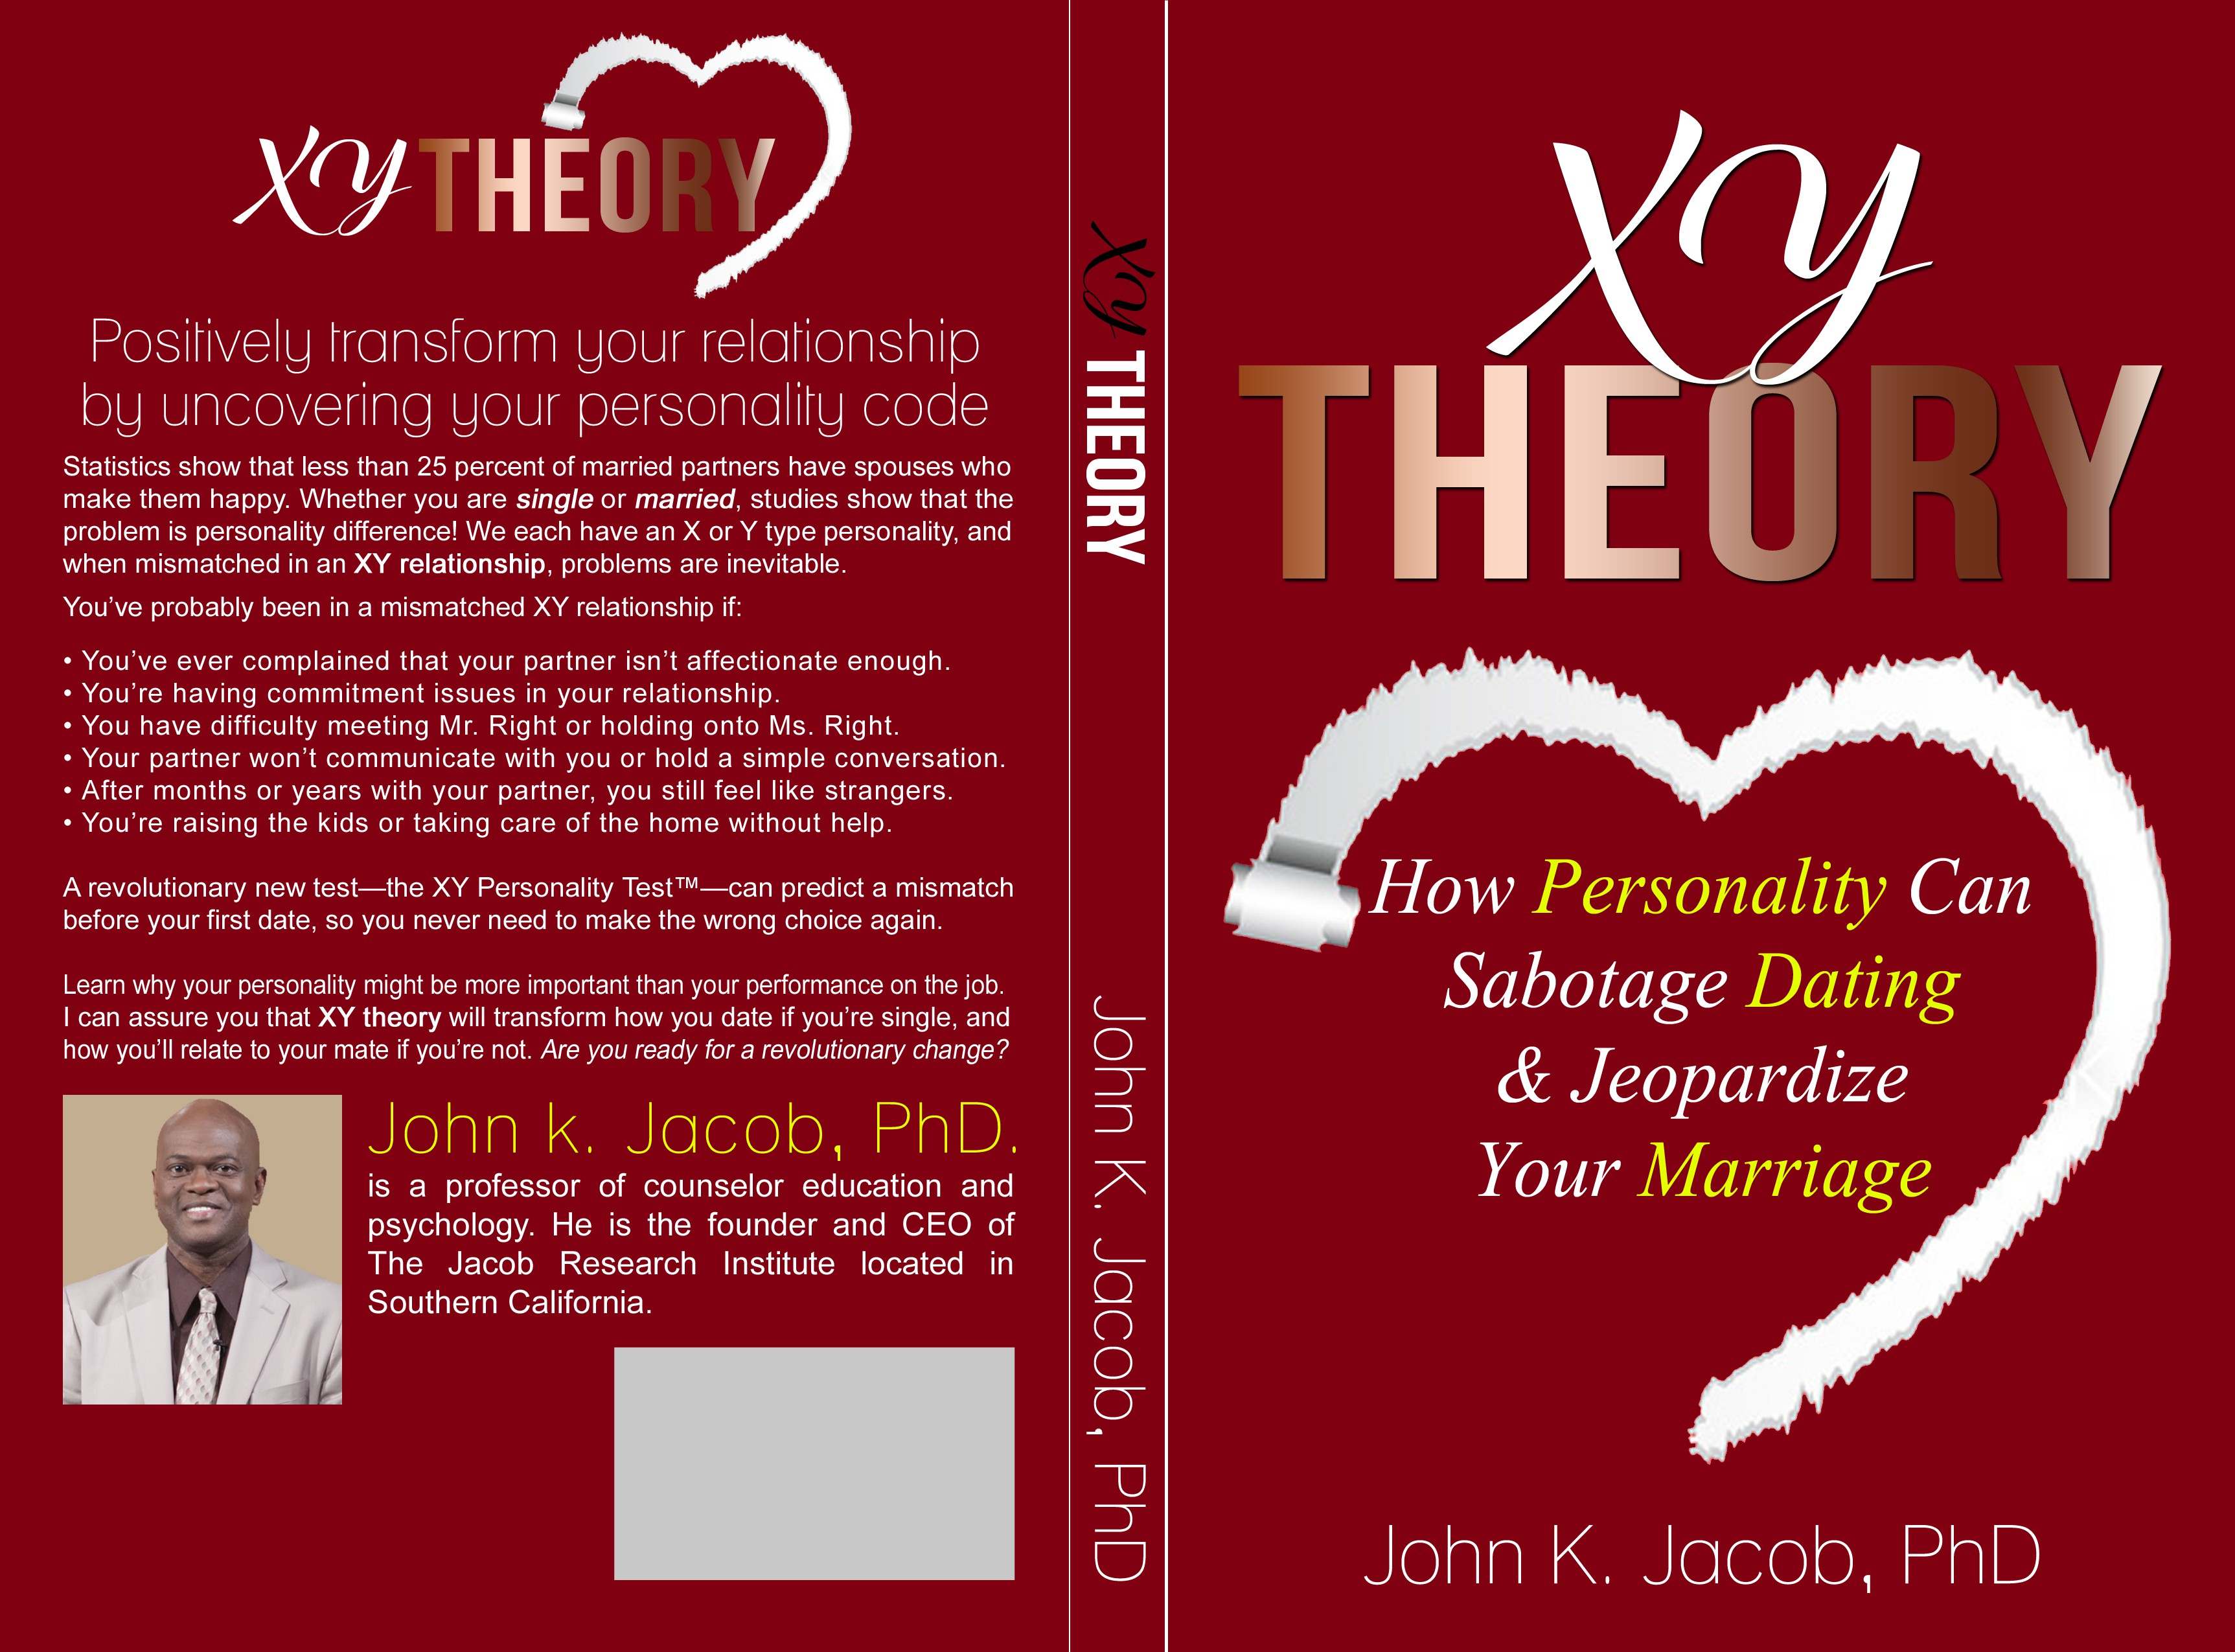 XY THEORY NEEDS A NEW BOOK COVER!